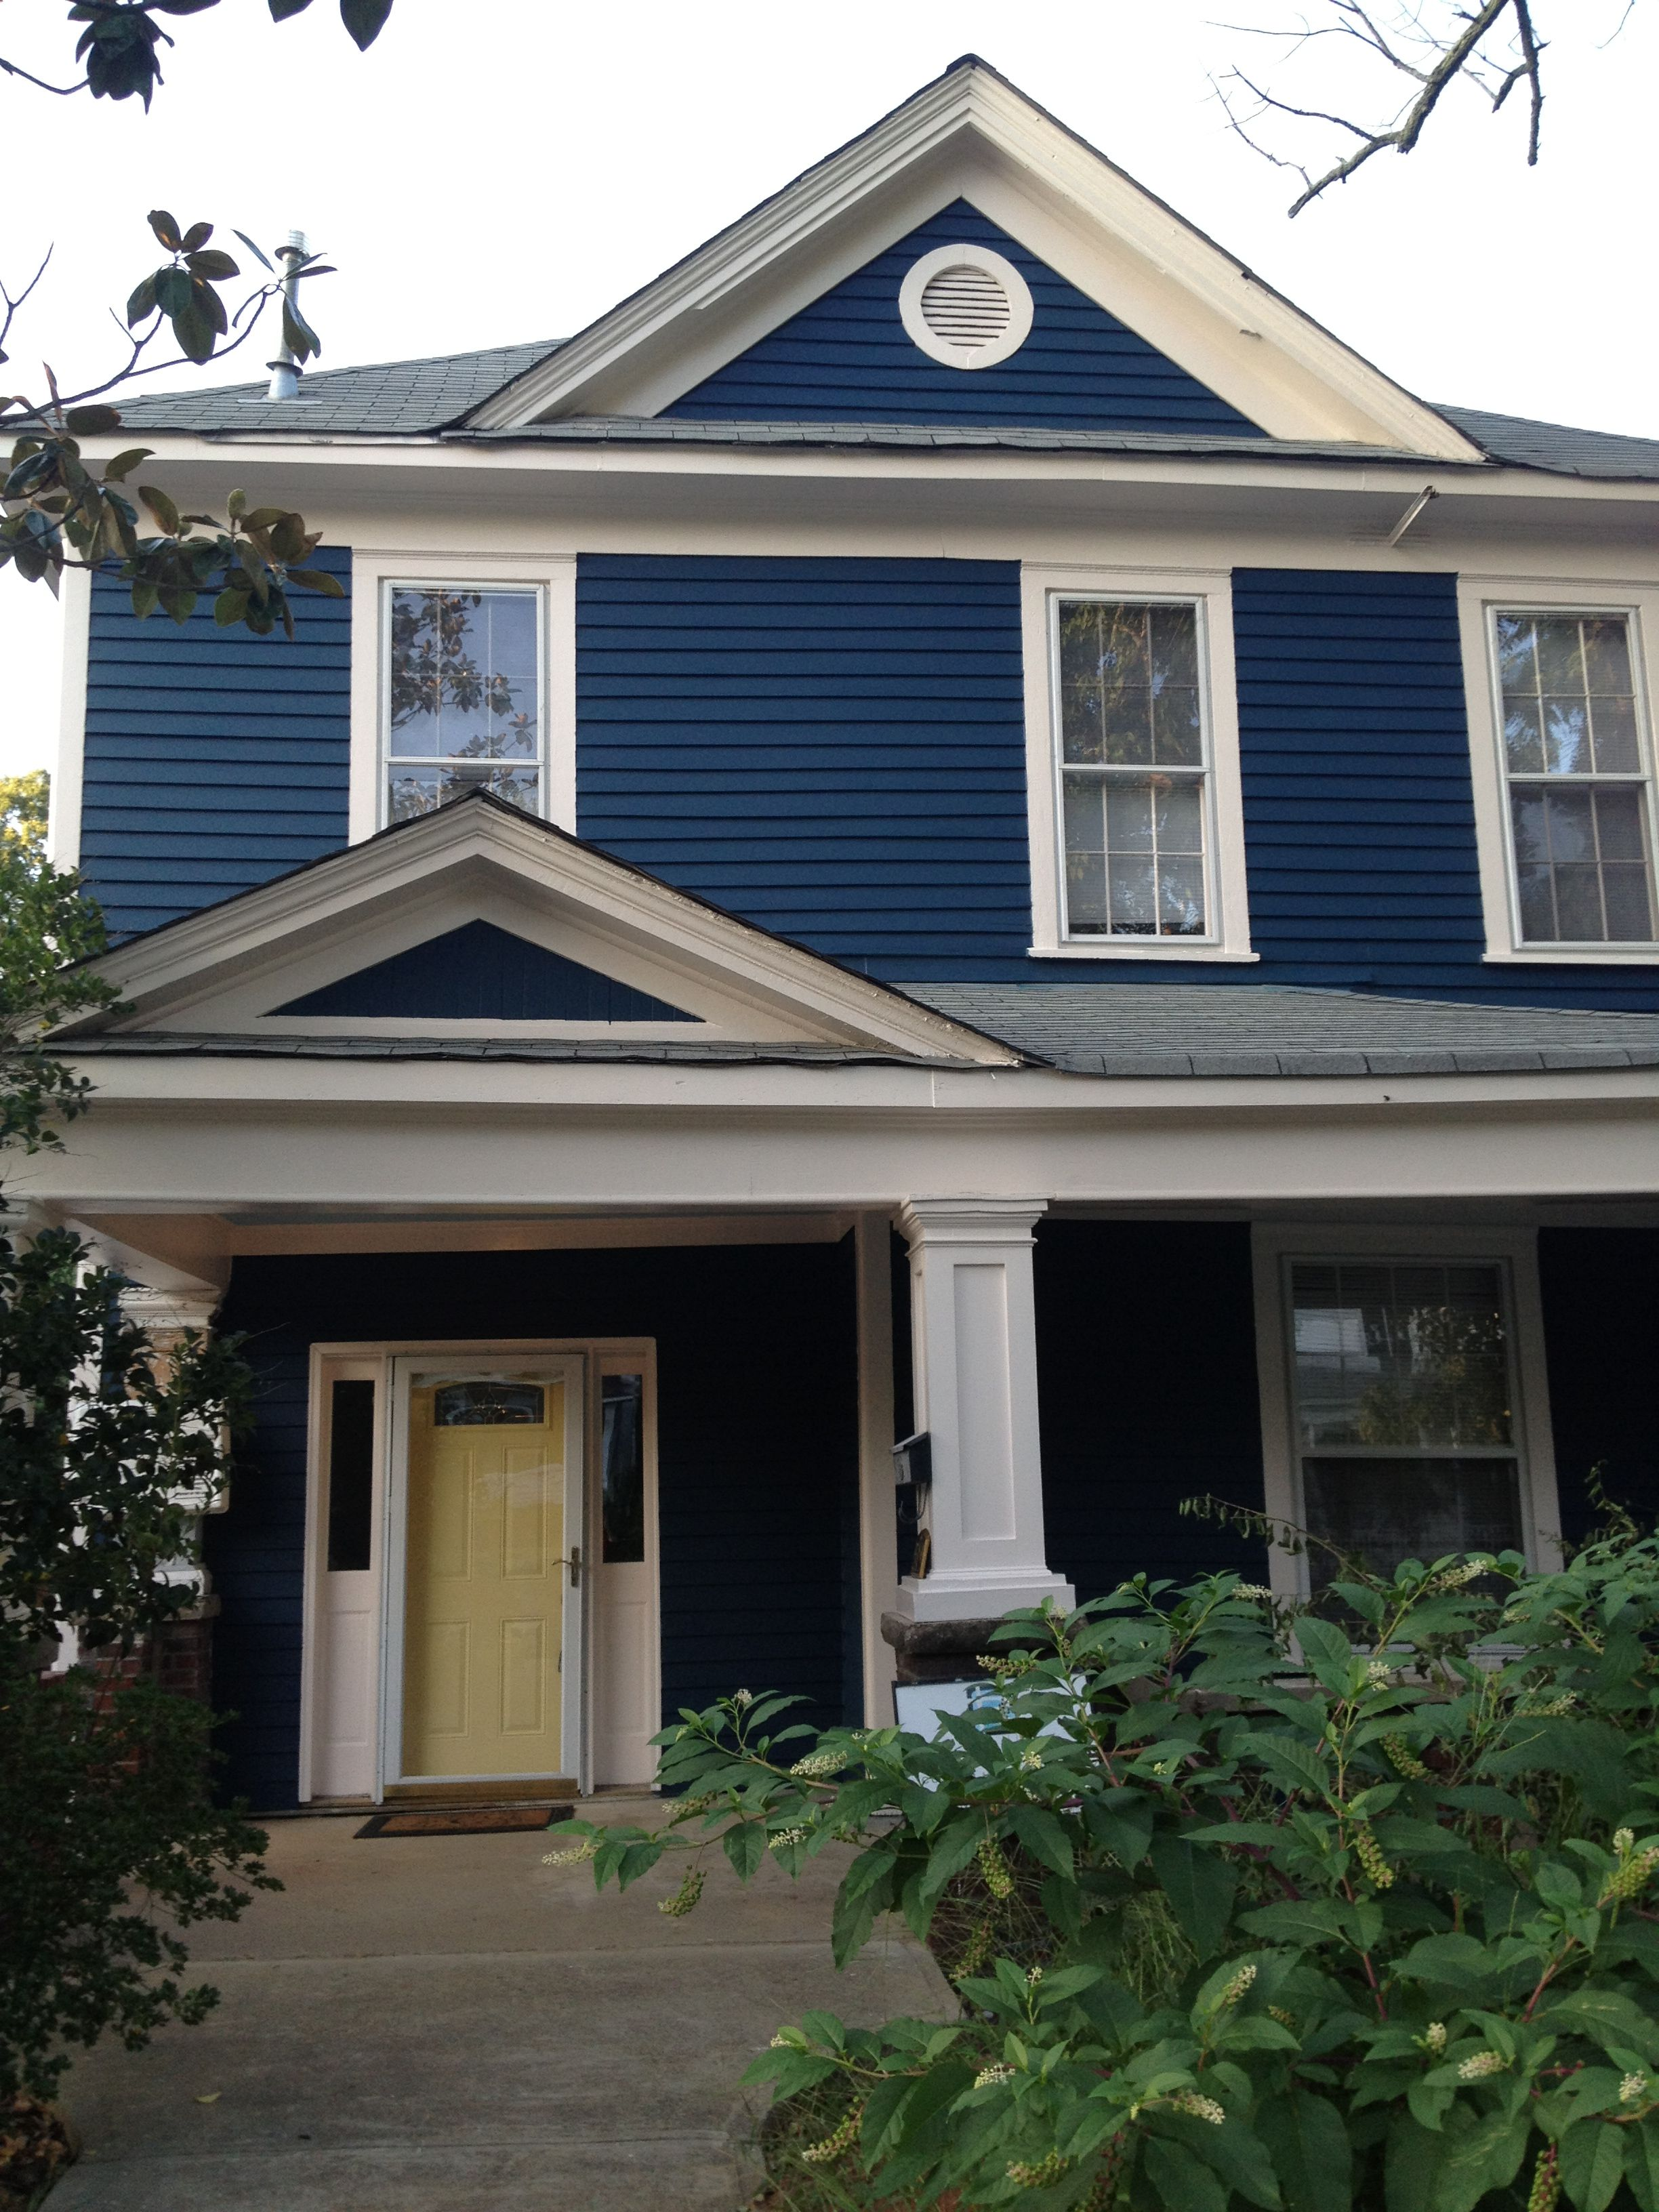 Exterior Home House Design: Just Went To Pin A Blue House With Yellow Door And